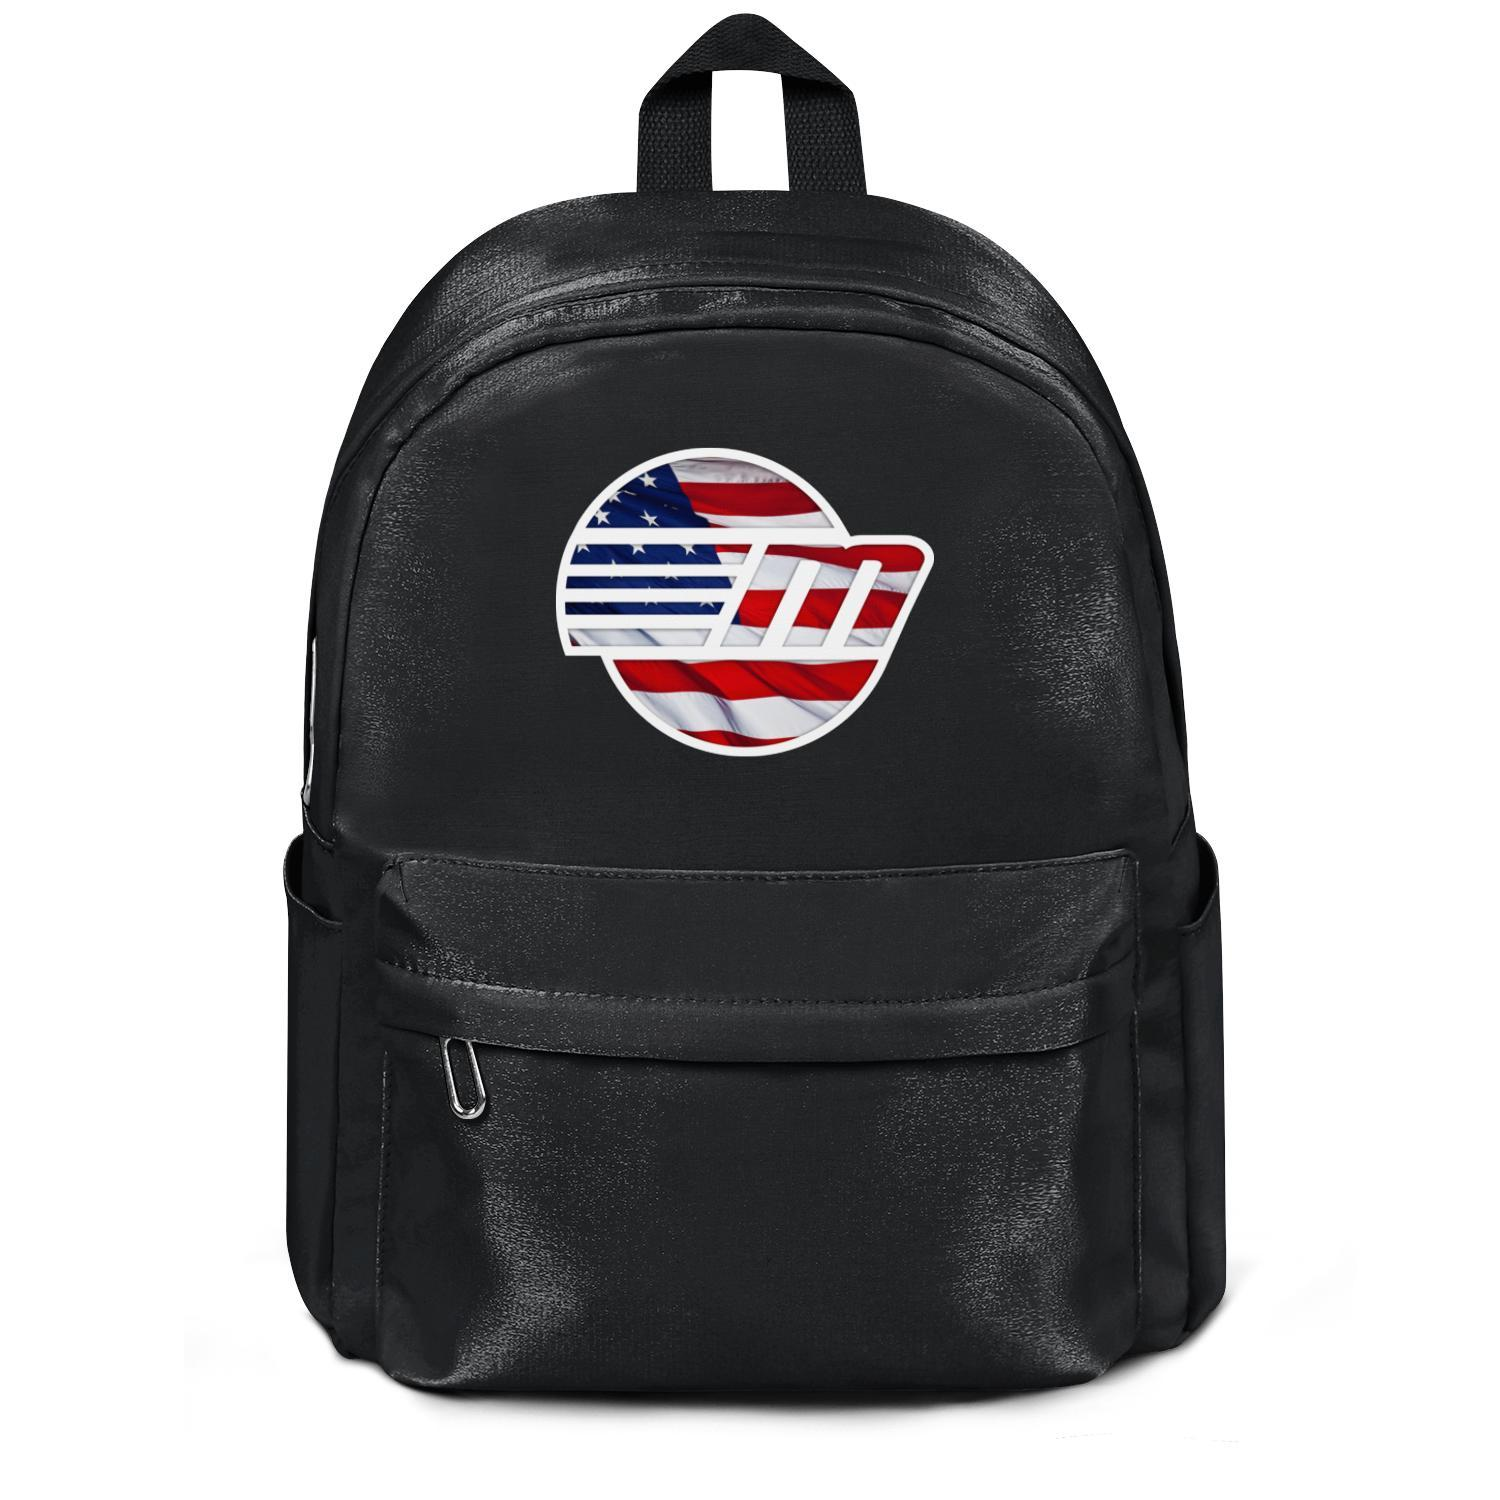 Malibu Boats Wakesetter American flag Fashion cinch Wool ,Shoulder backpack, design retro character durable and convenient string for